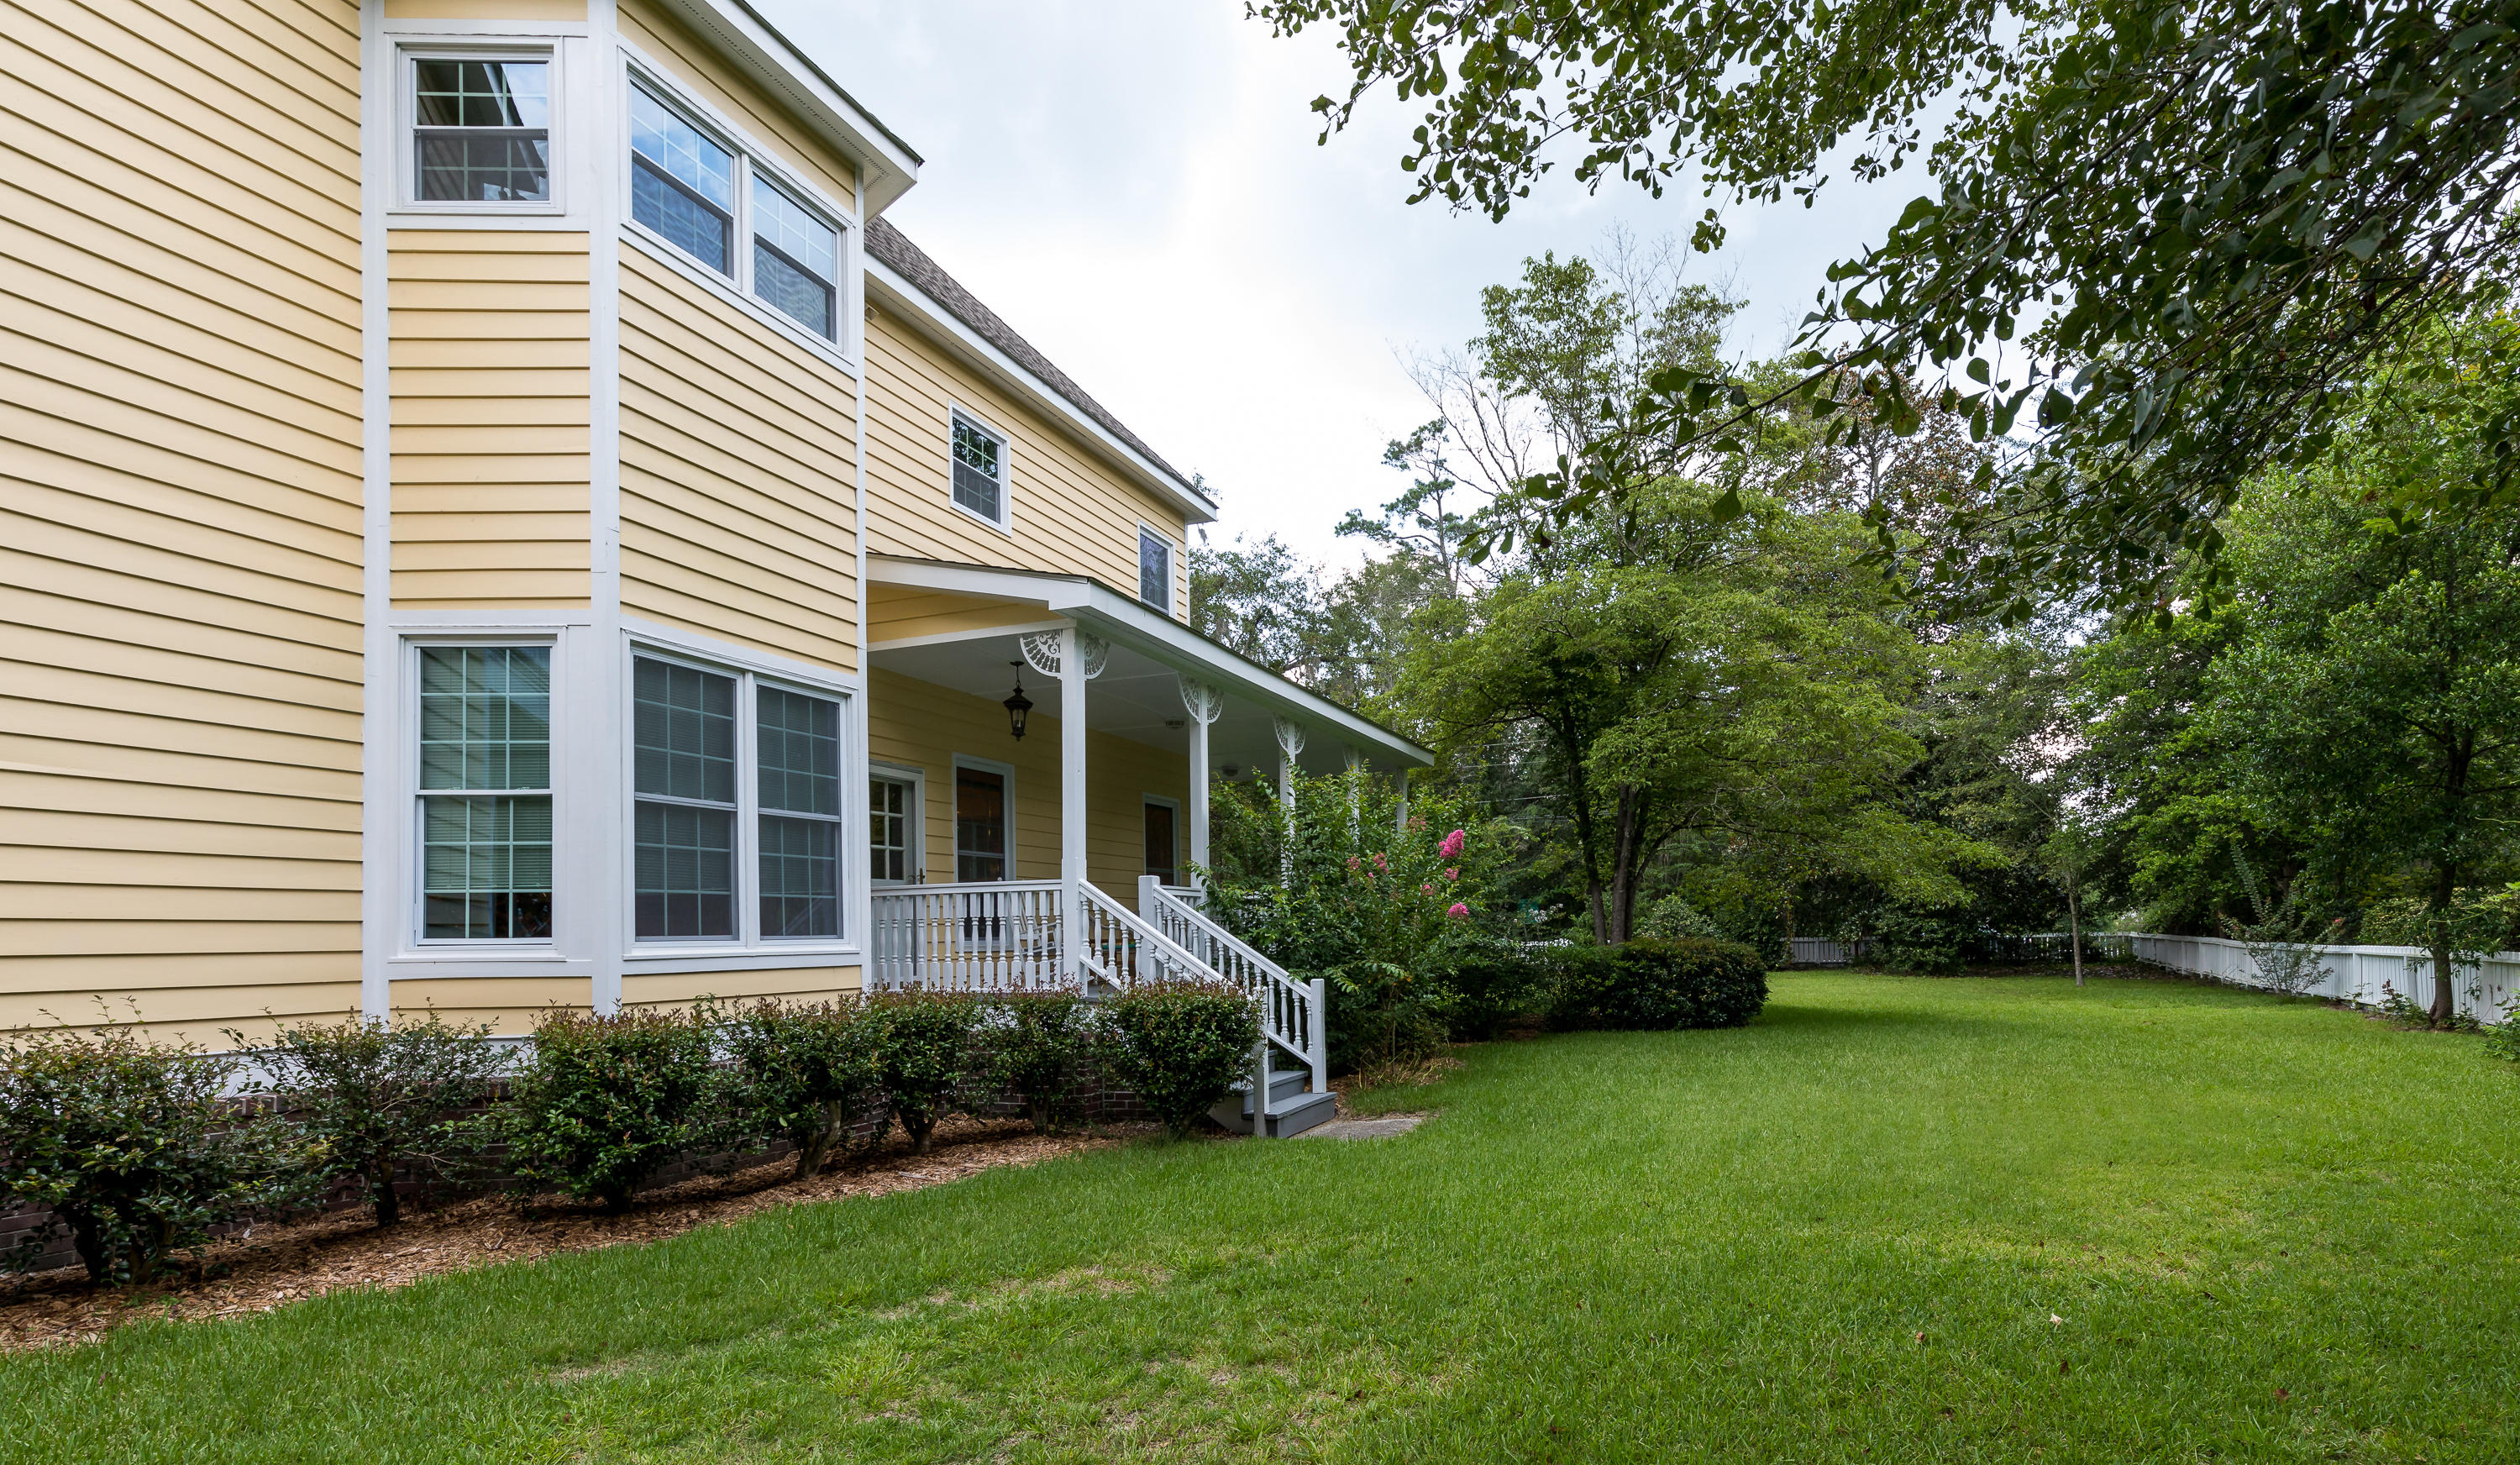 Photo of 539 Central Ave, Summerville, SC 29483